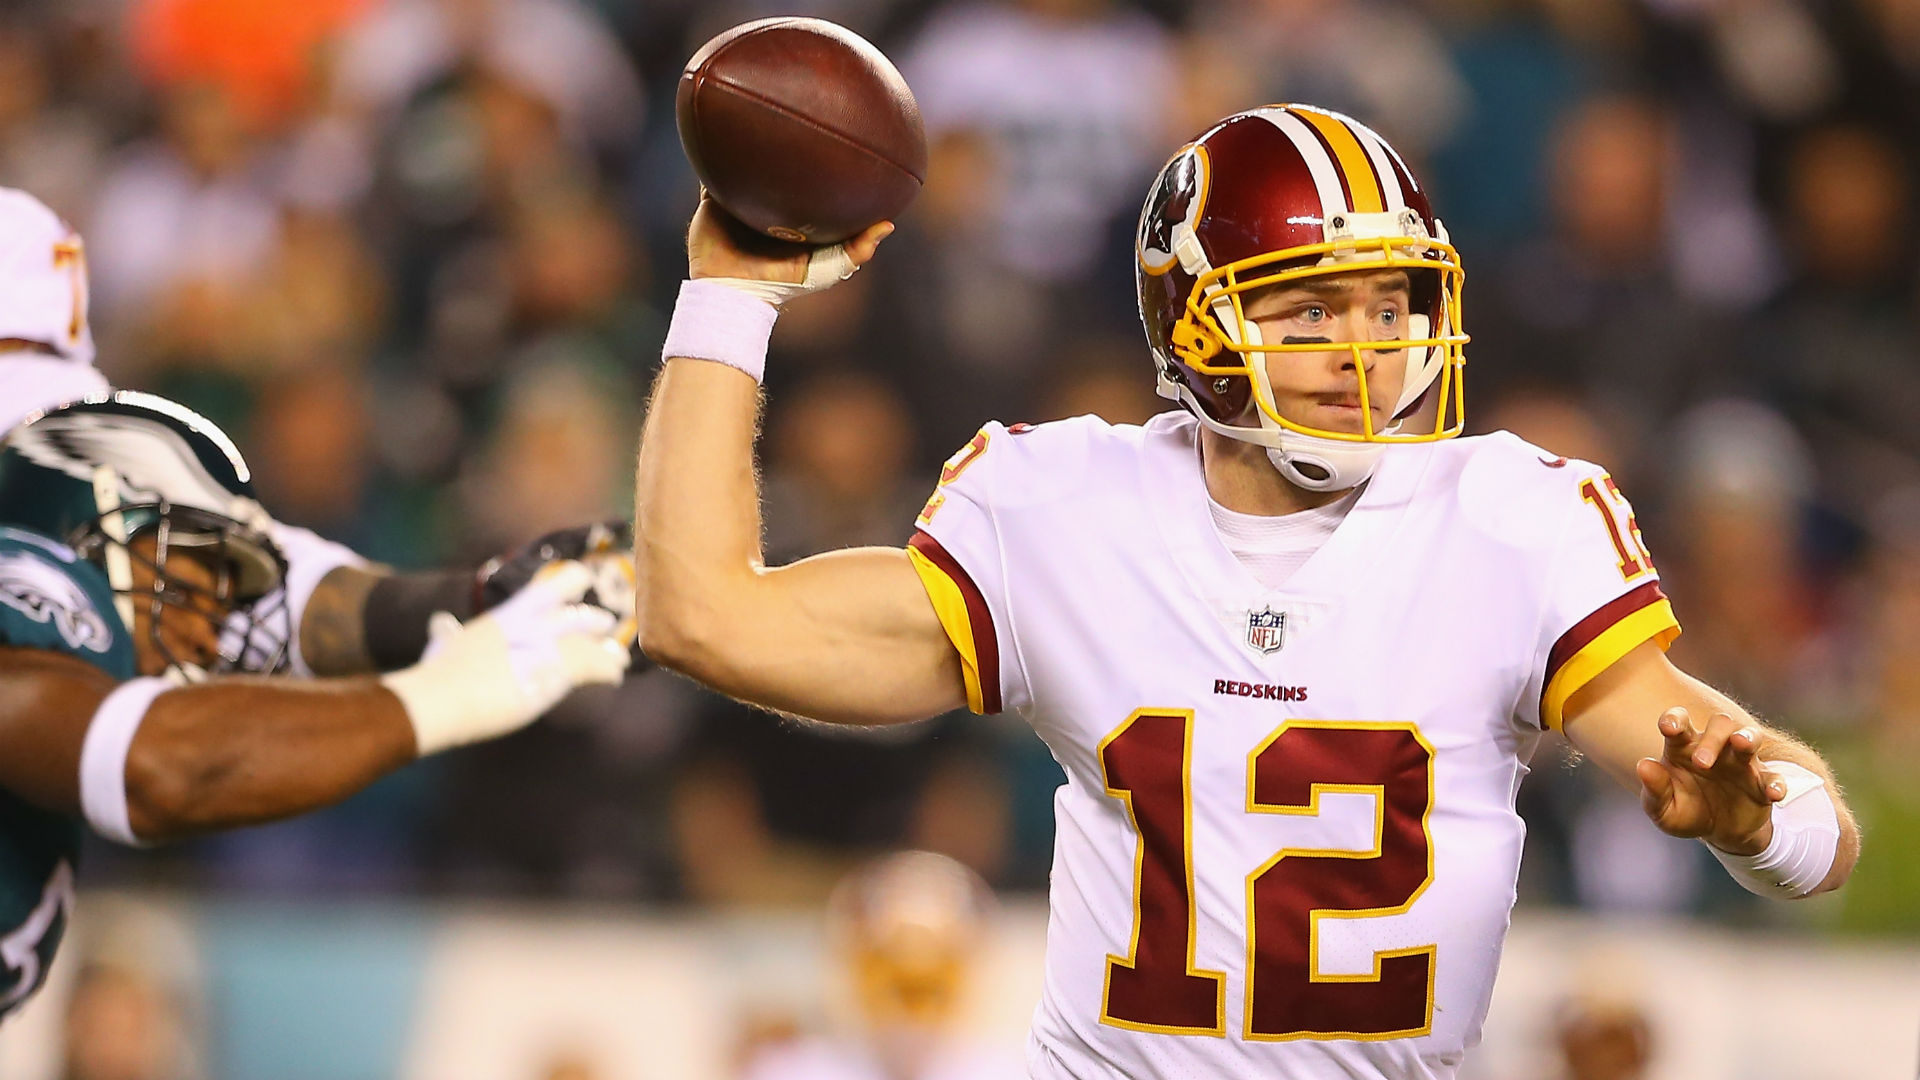 The Redskins Announced That Colt McCoy's Season Is Over